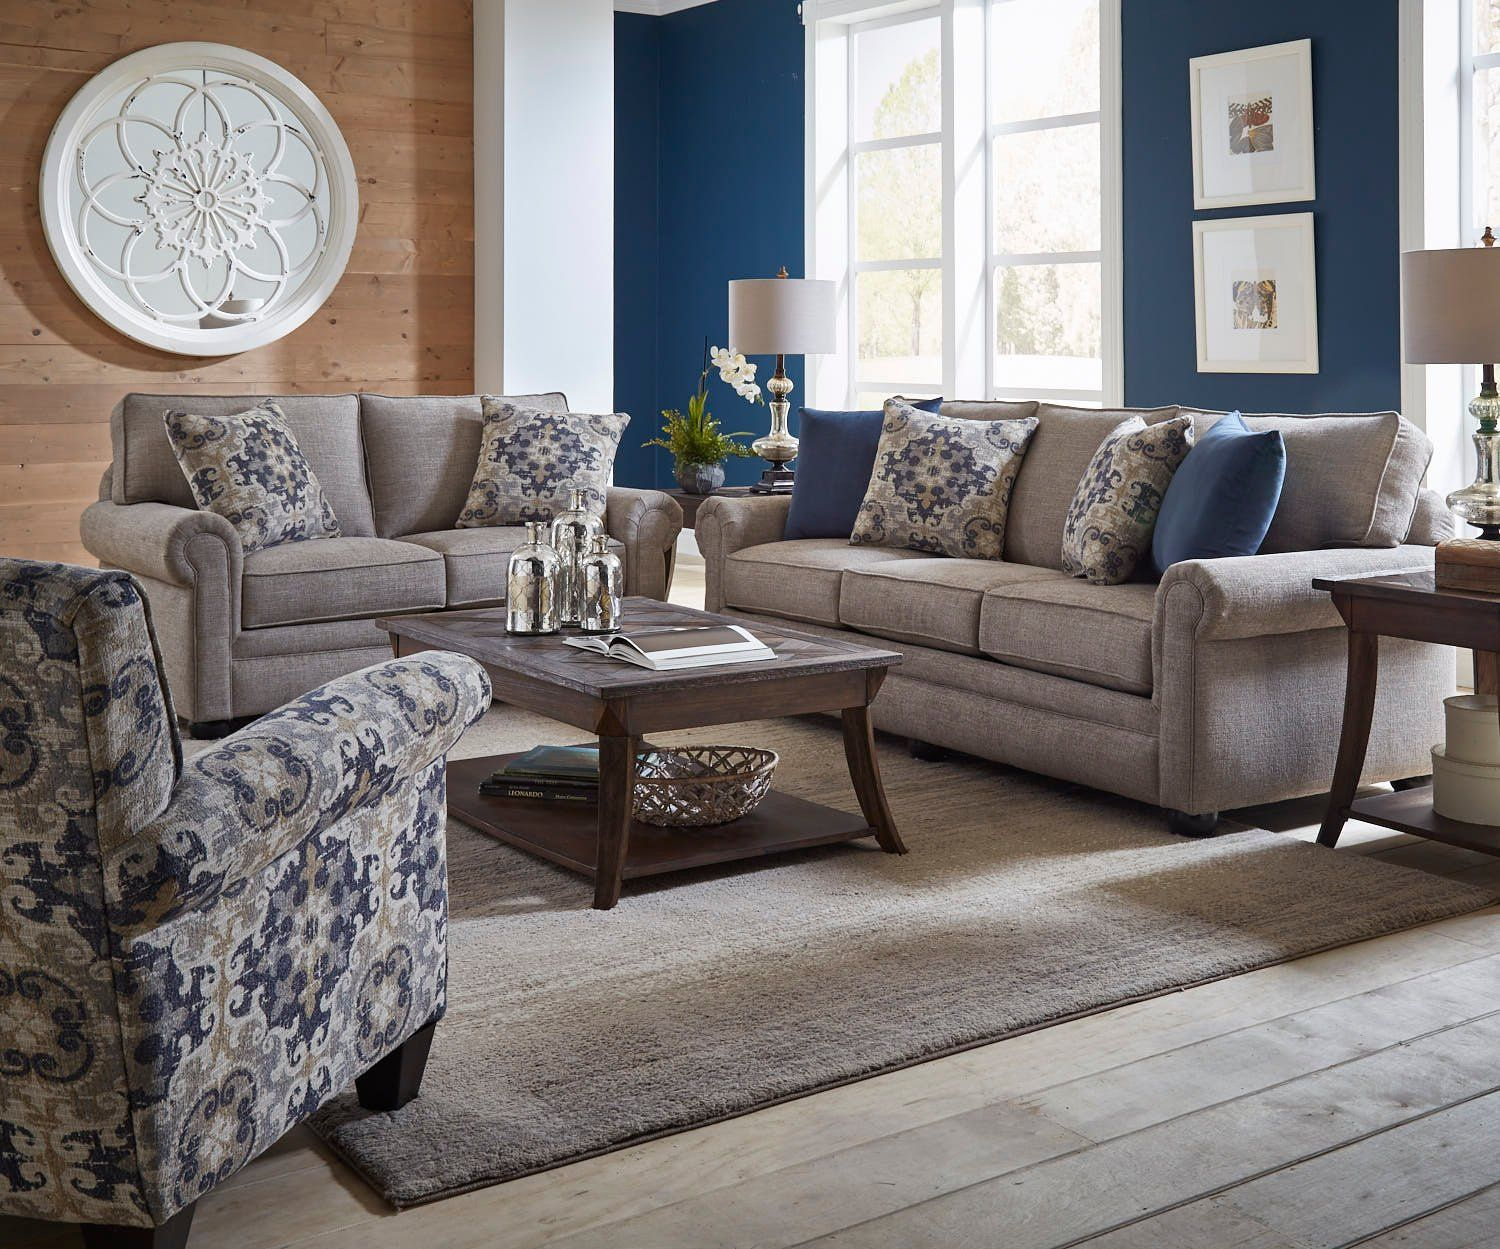 Best Casual Traditional Taupe Sofa Bed 2 Piece Living Room Set 640 x 480